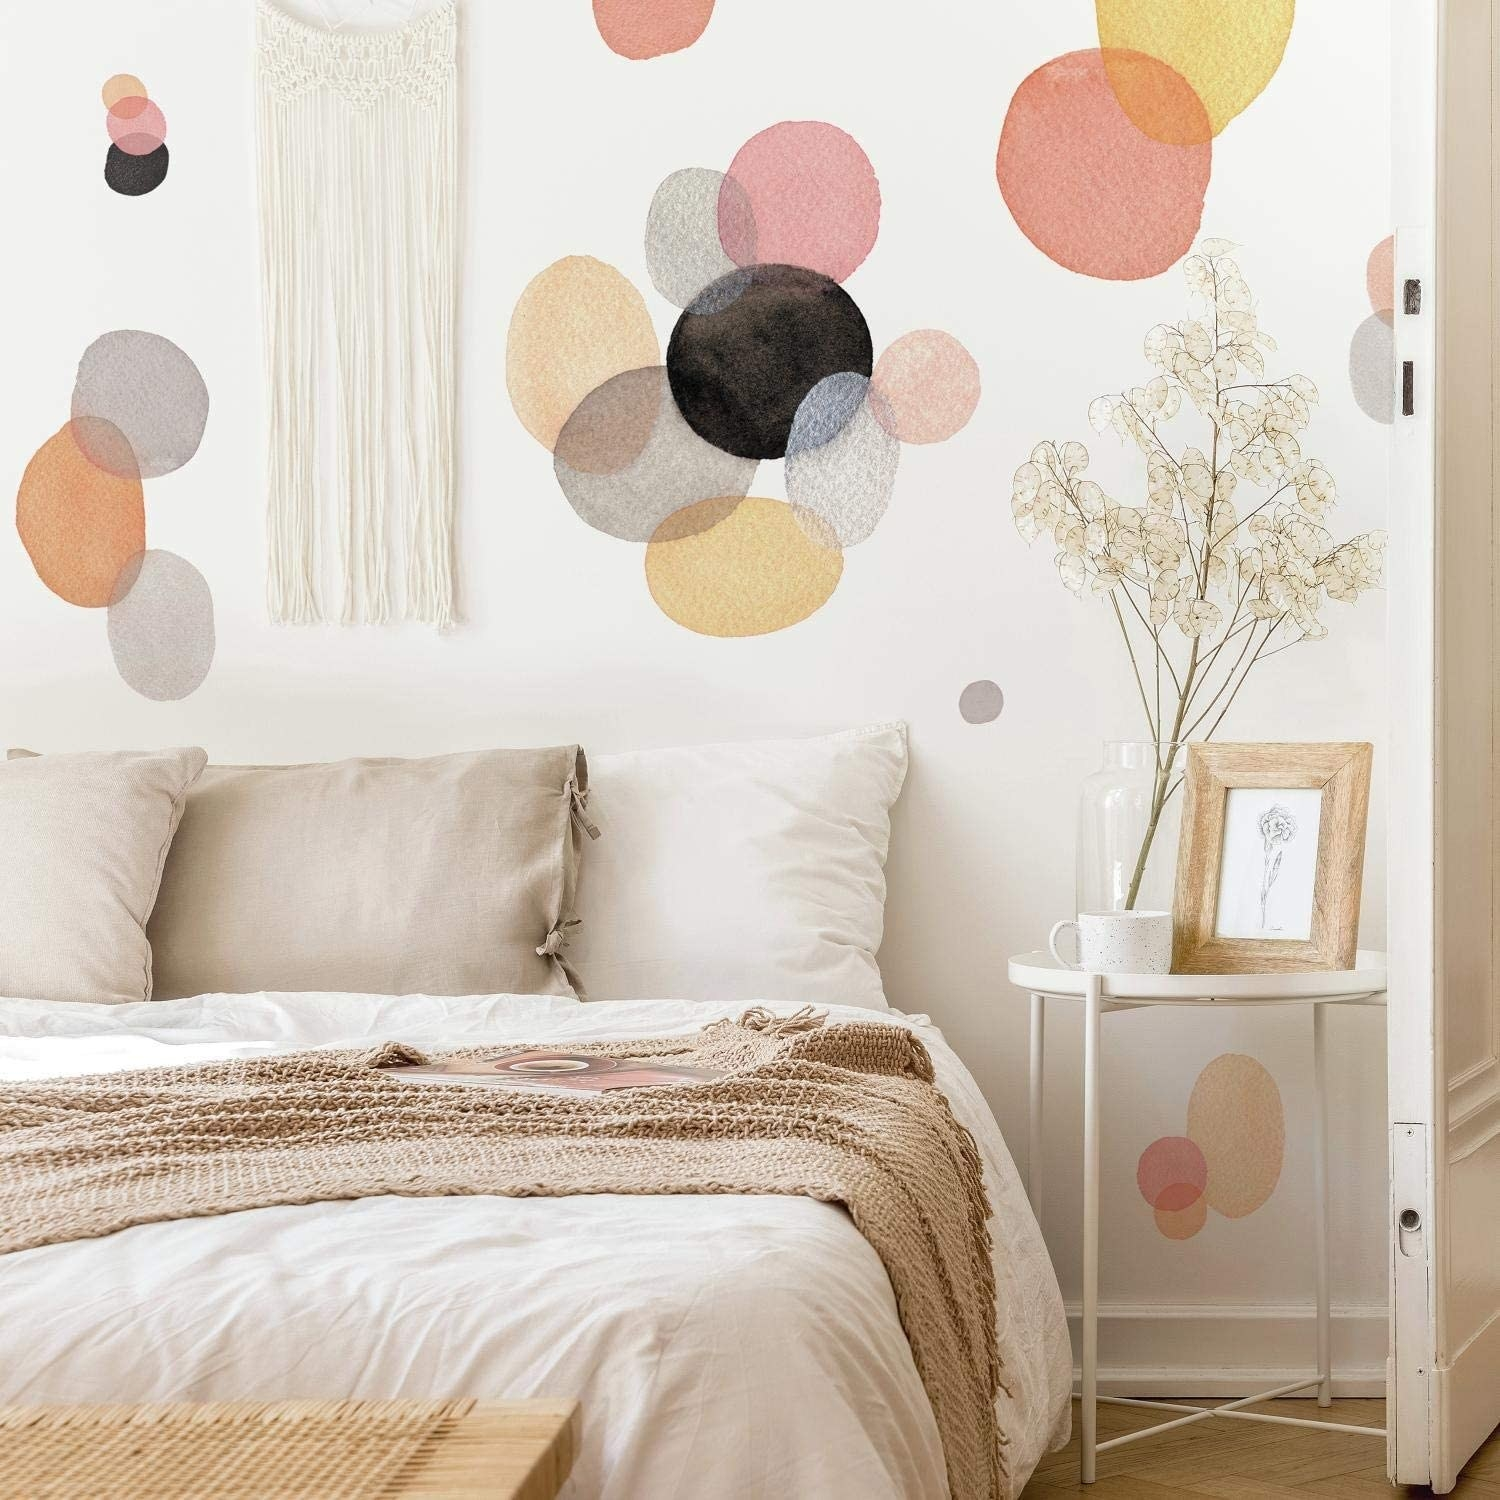 The decals on a bedroom wall